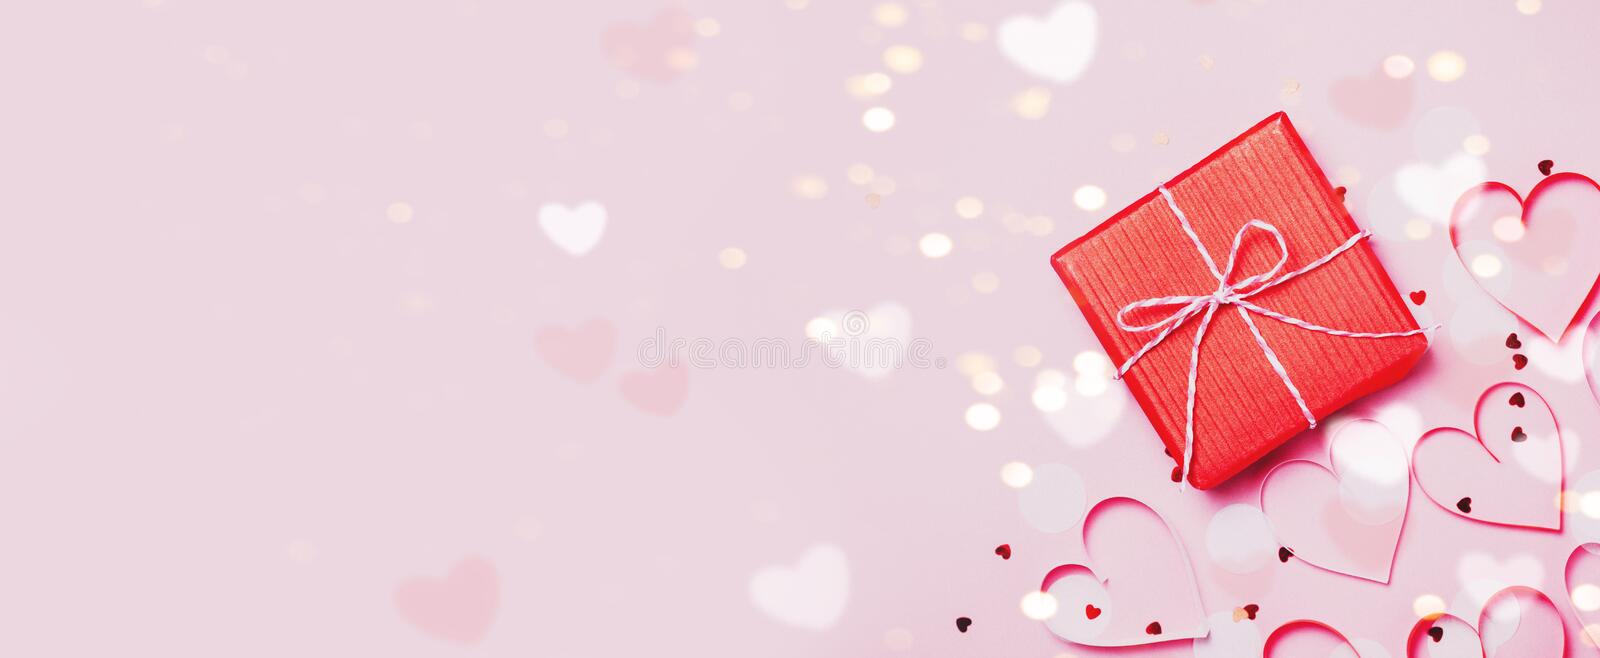 Gift box vith red bow and glitter sparkles on pink background. st. Valentine`s day concept. Gift box vith red bow and glitter sparkles and confetti on pink royalty free stock photography